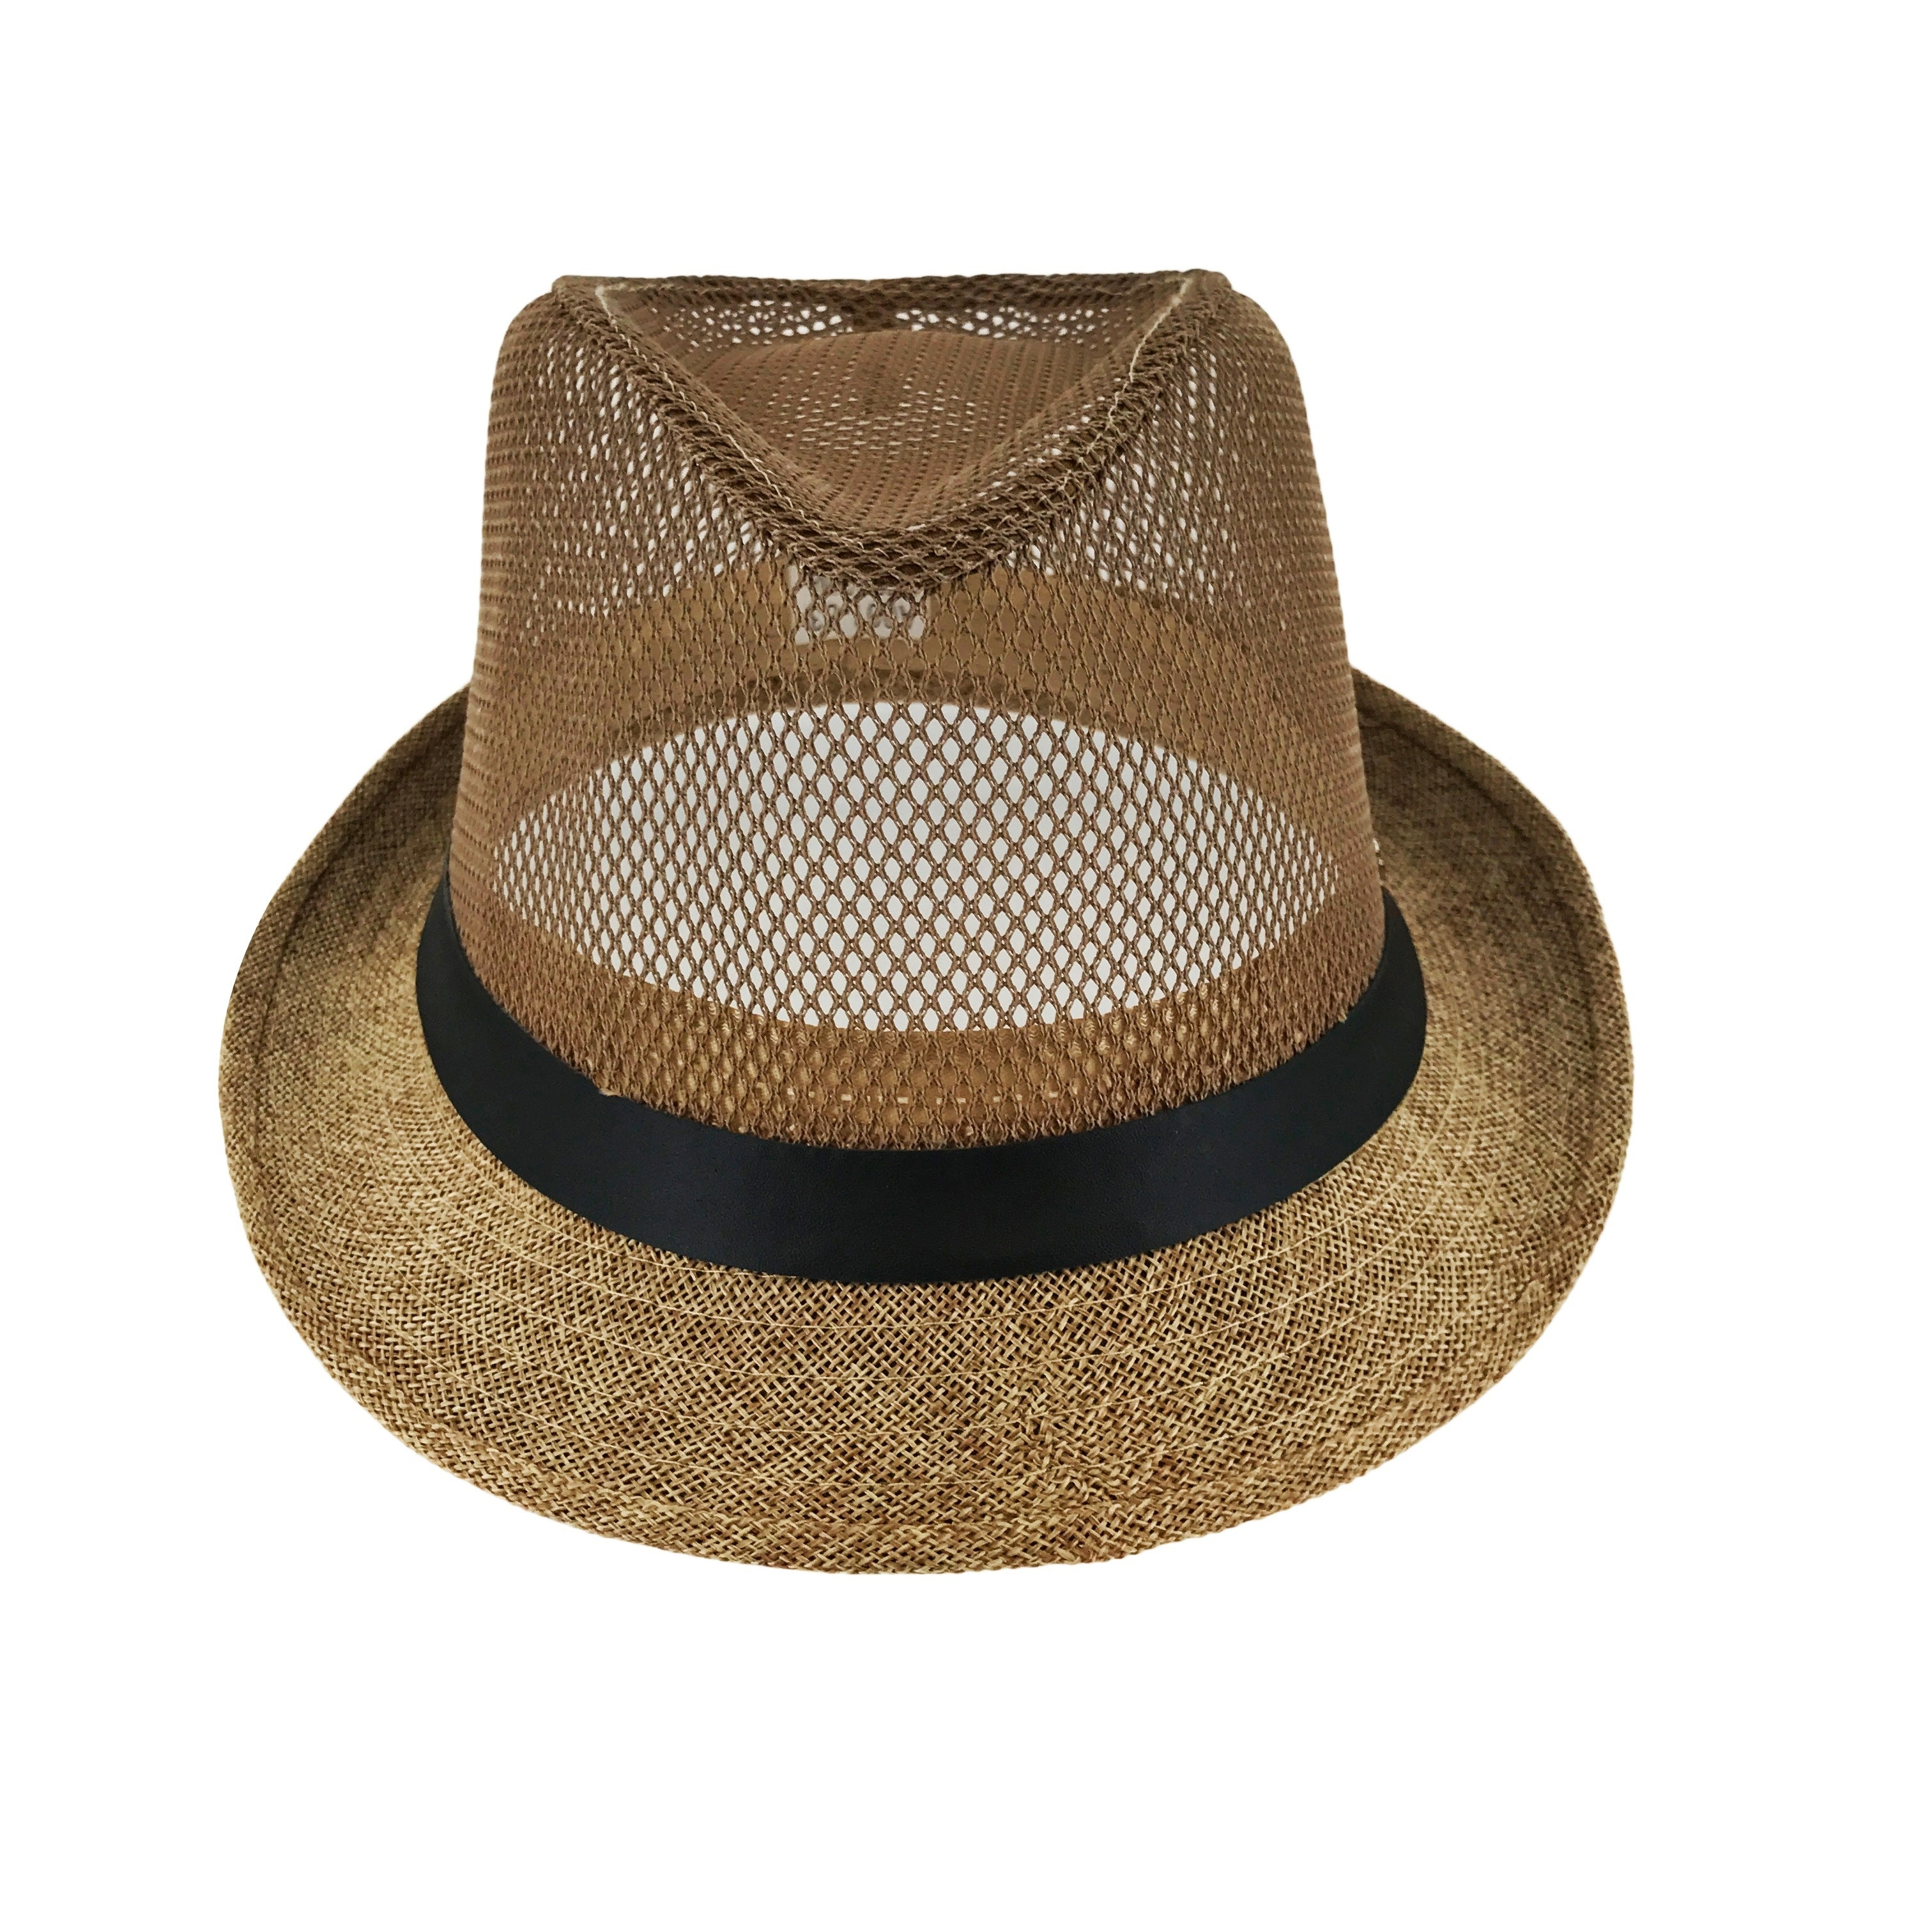 Shop Faddism C-Thru Phase Out Mesh Street Fashion Unisex Fedora Hats - Free  Shipping On Orders Over  45 - Overstock.com - 17955594 a7d44e66da0a